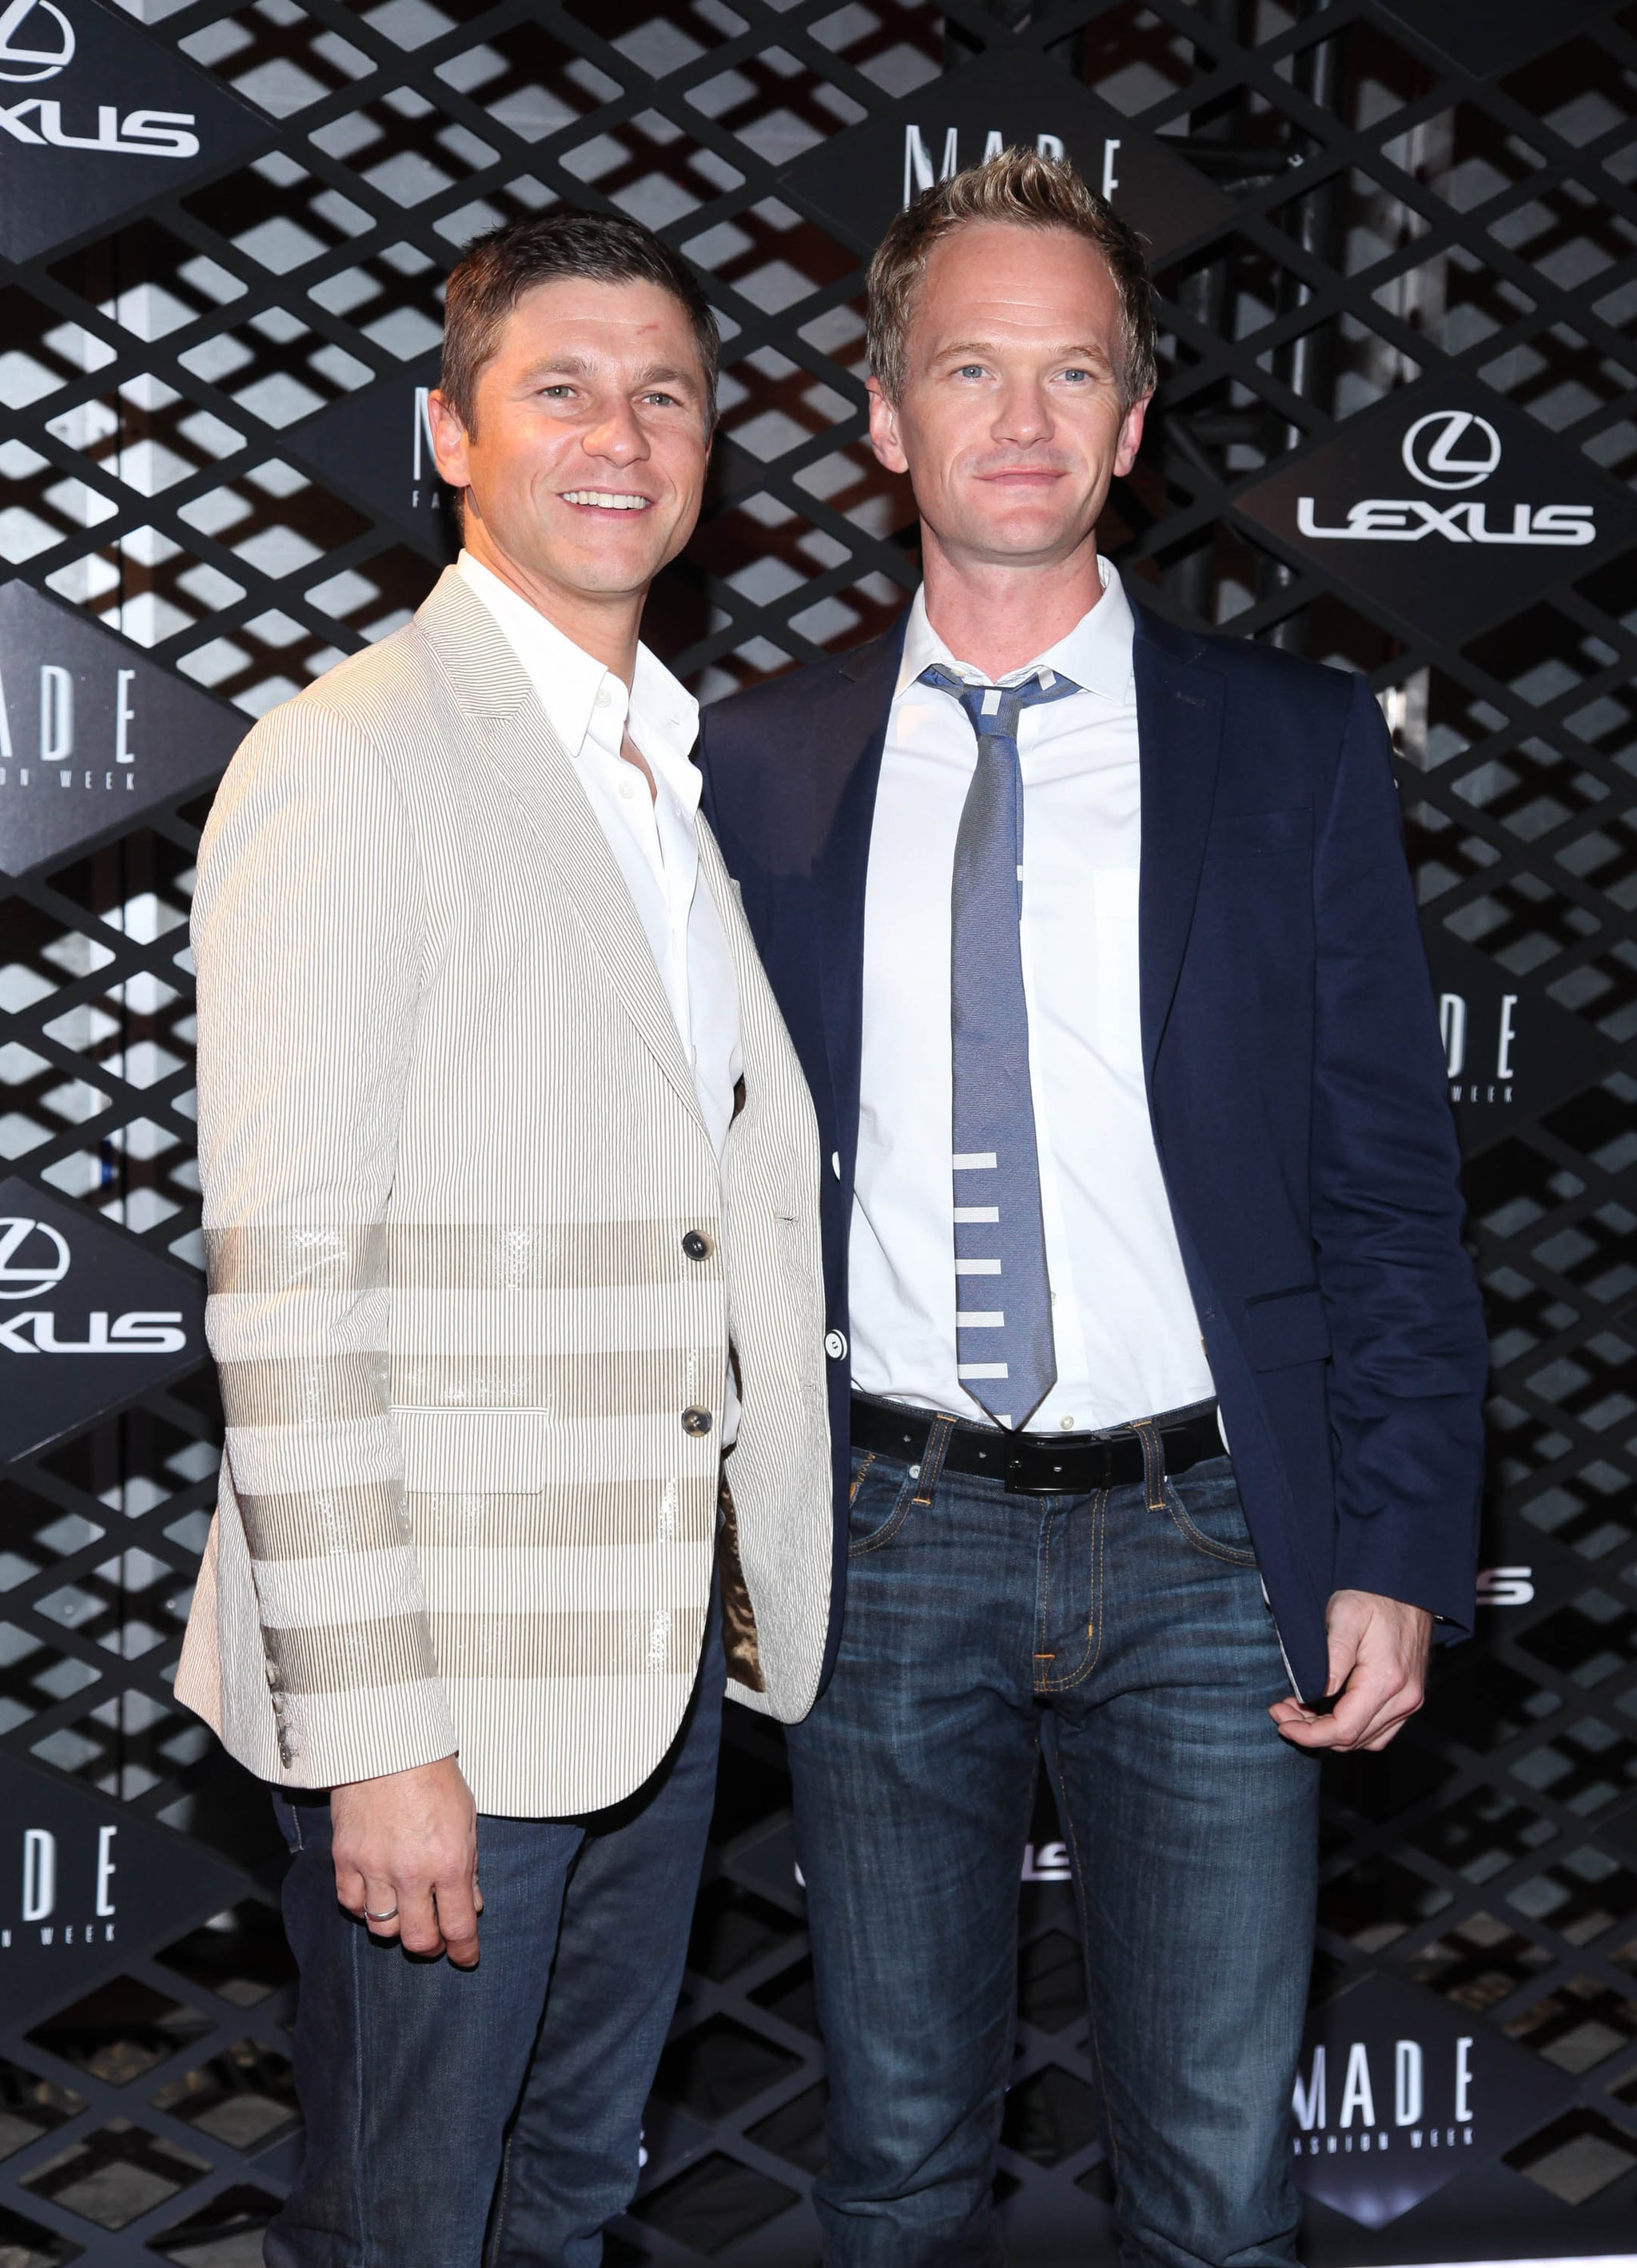 Neil Patrick Harris and David Burtka made a cute couple at the Lexus event on Thursday.